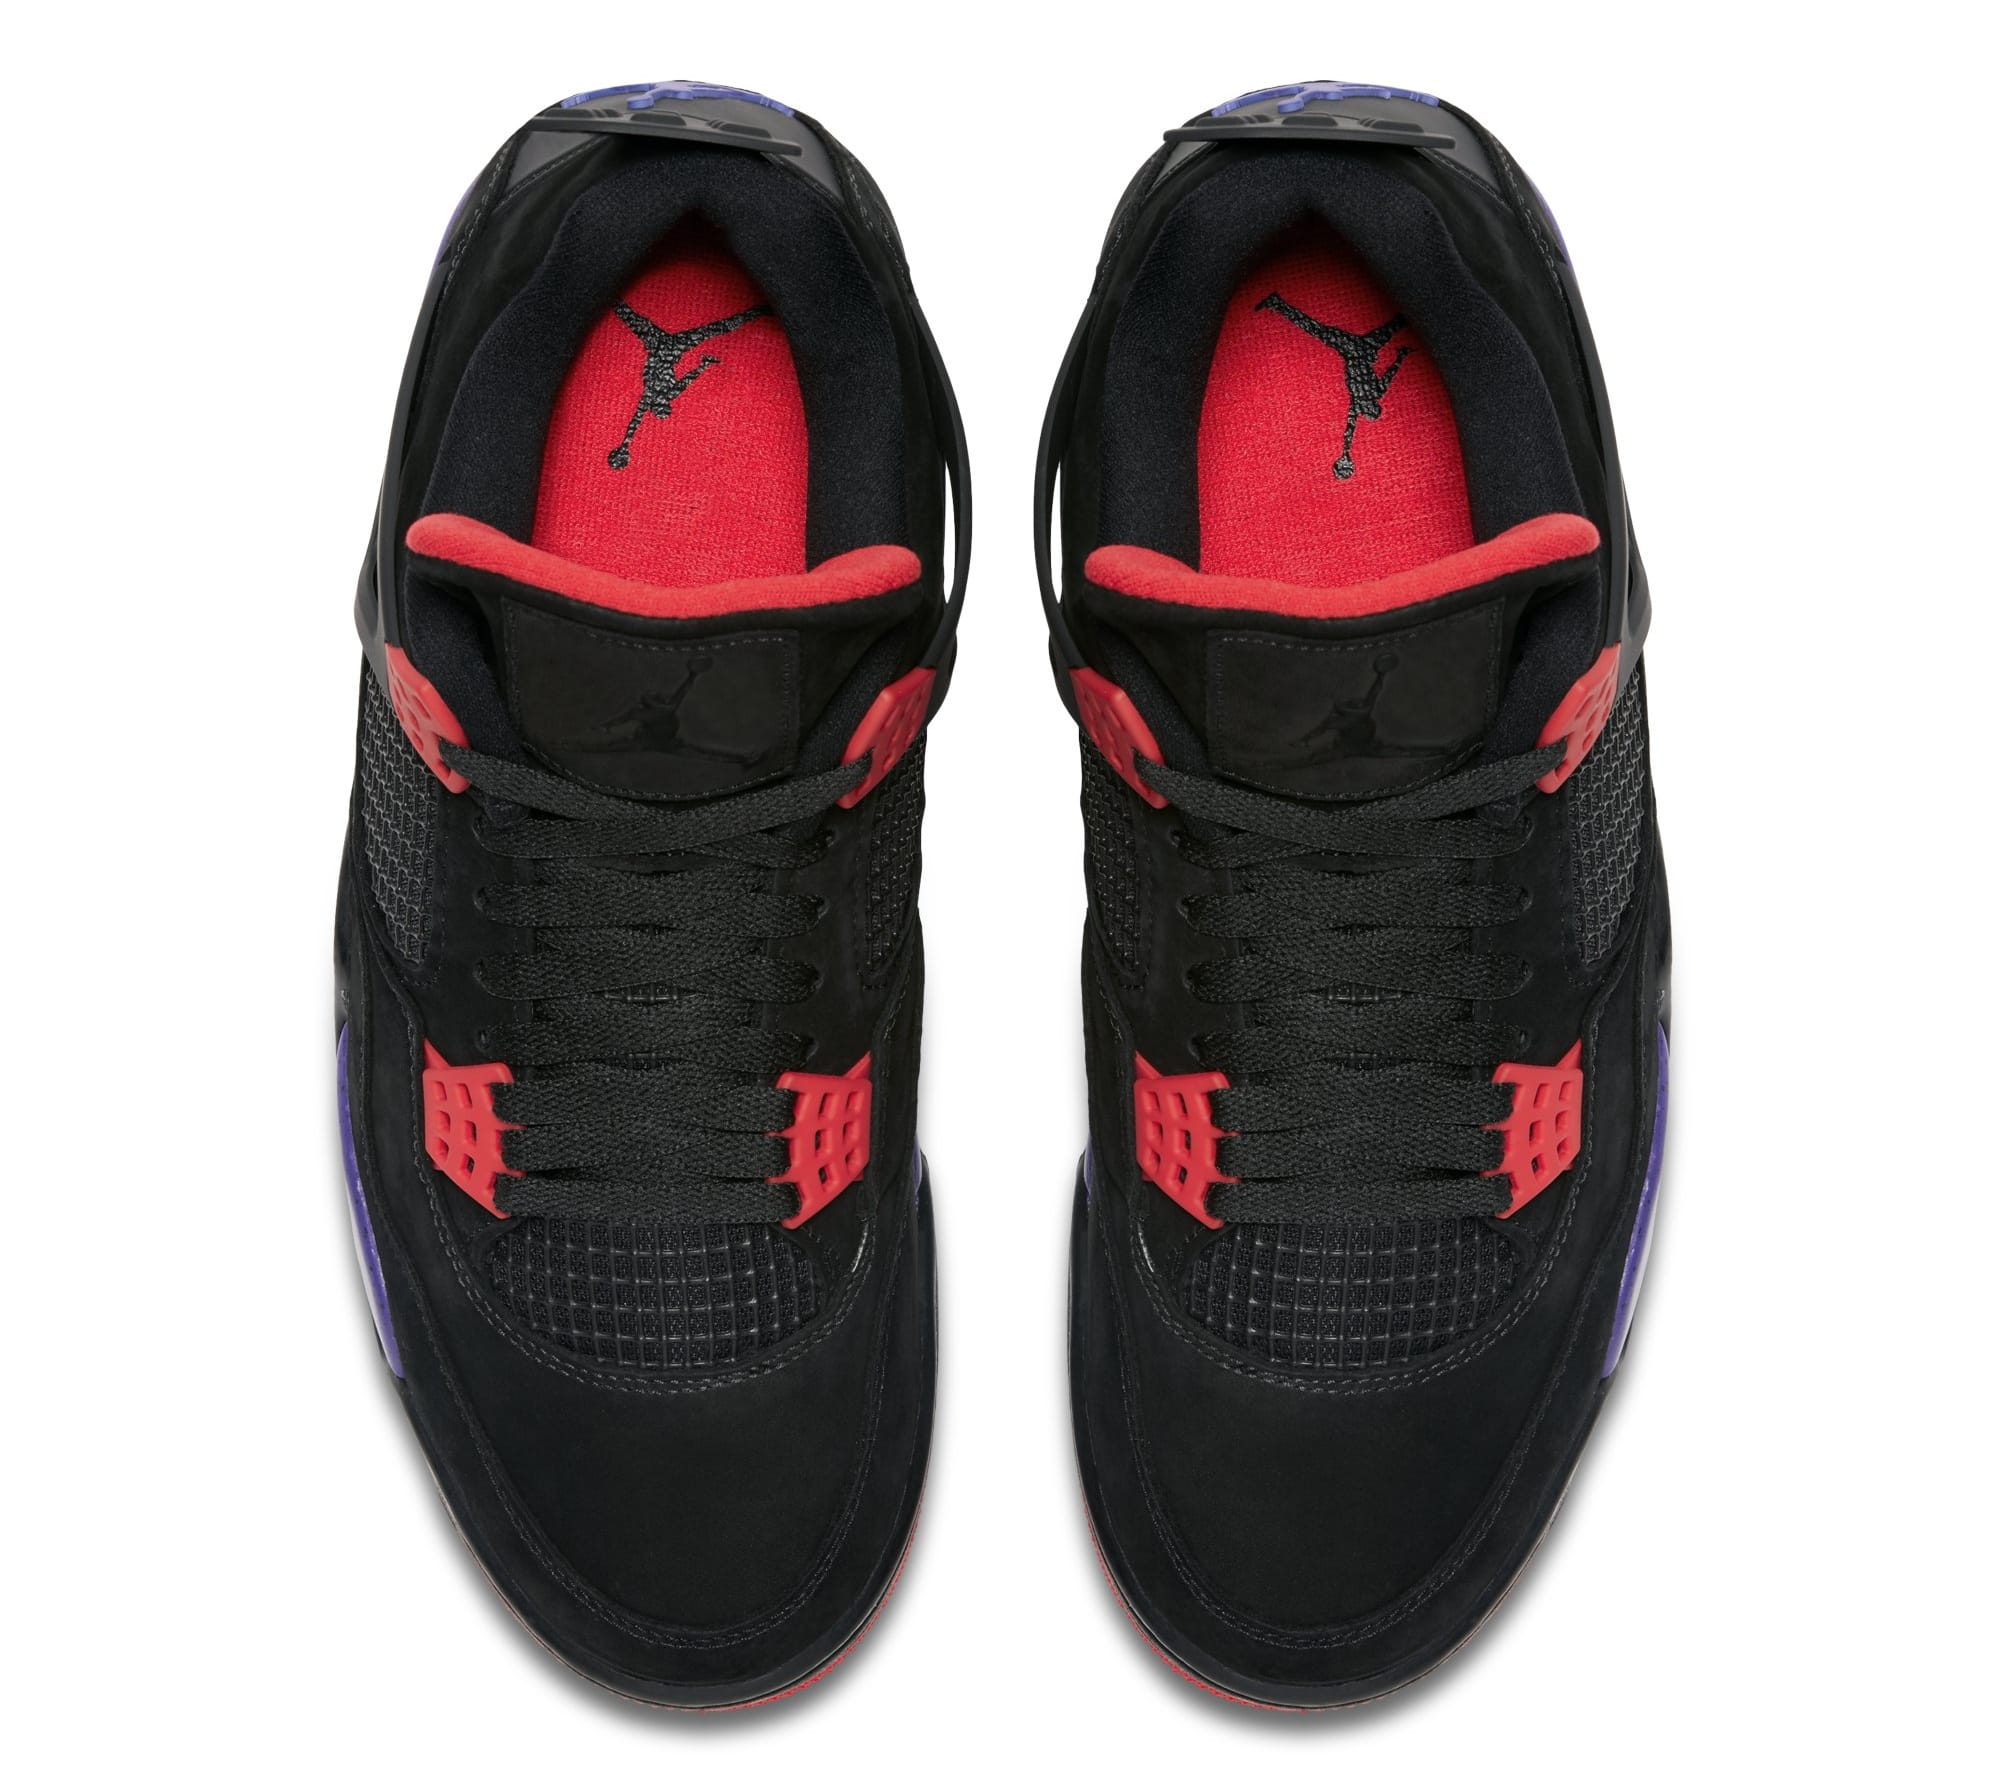 b07ef59ef4d Air Jordan 4 Retro NRG 'Black/University Red/Court Purple ' AQ3816-056  Release Date | Sole Collector